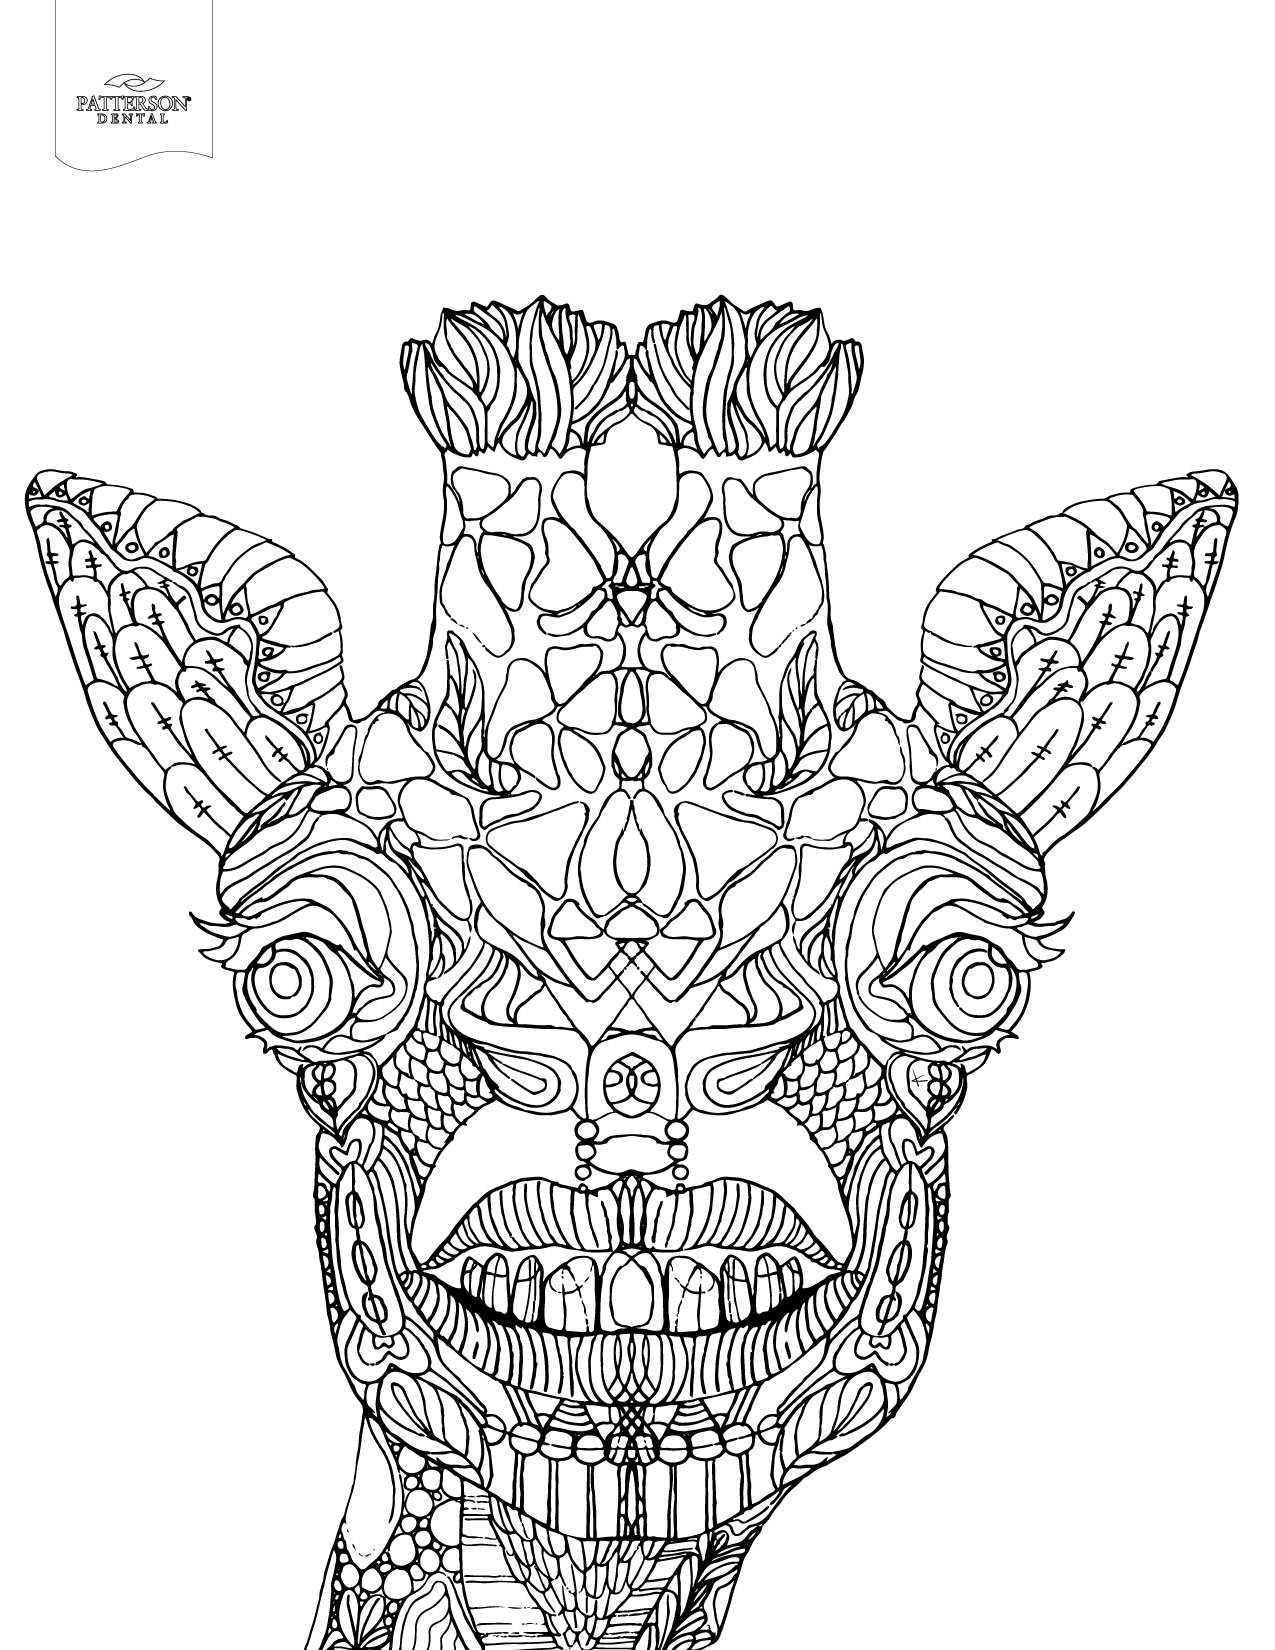 coloring prints for adults adult coloring pages animals best coloring pages for kids coloring adults for prints